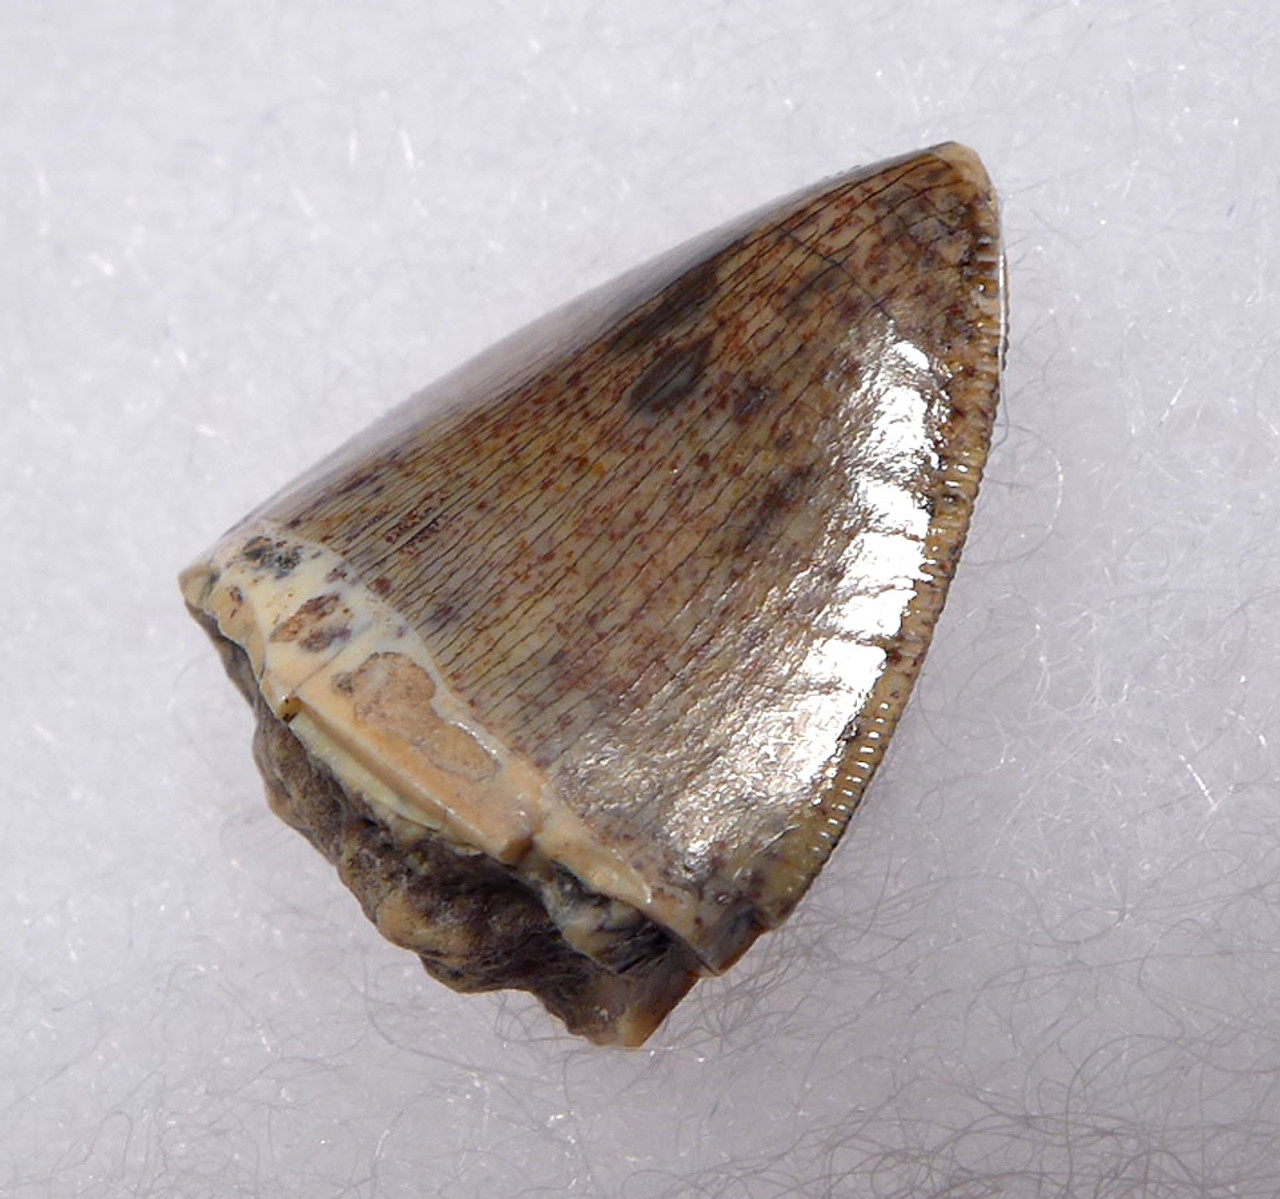 FINEST GRADE RUTIODON PHYTOSAUR FOSSIL TOOTH FROM THE TRIASSIC  *DT12-203